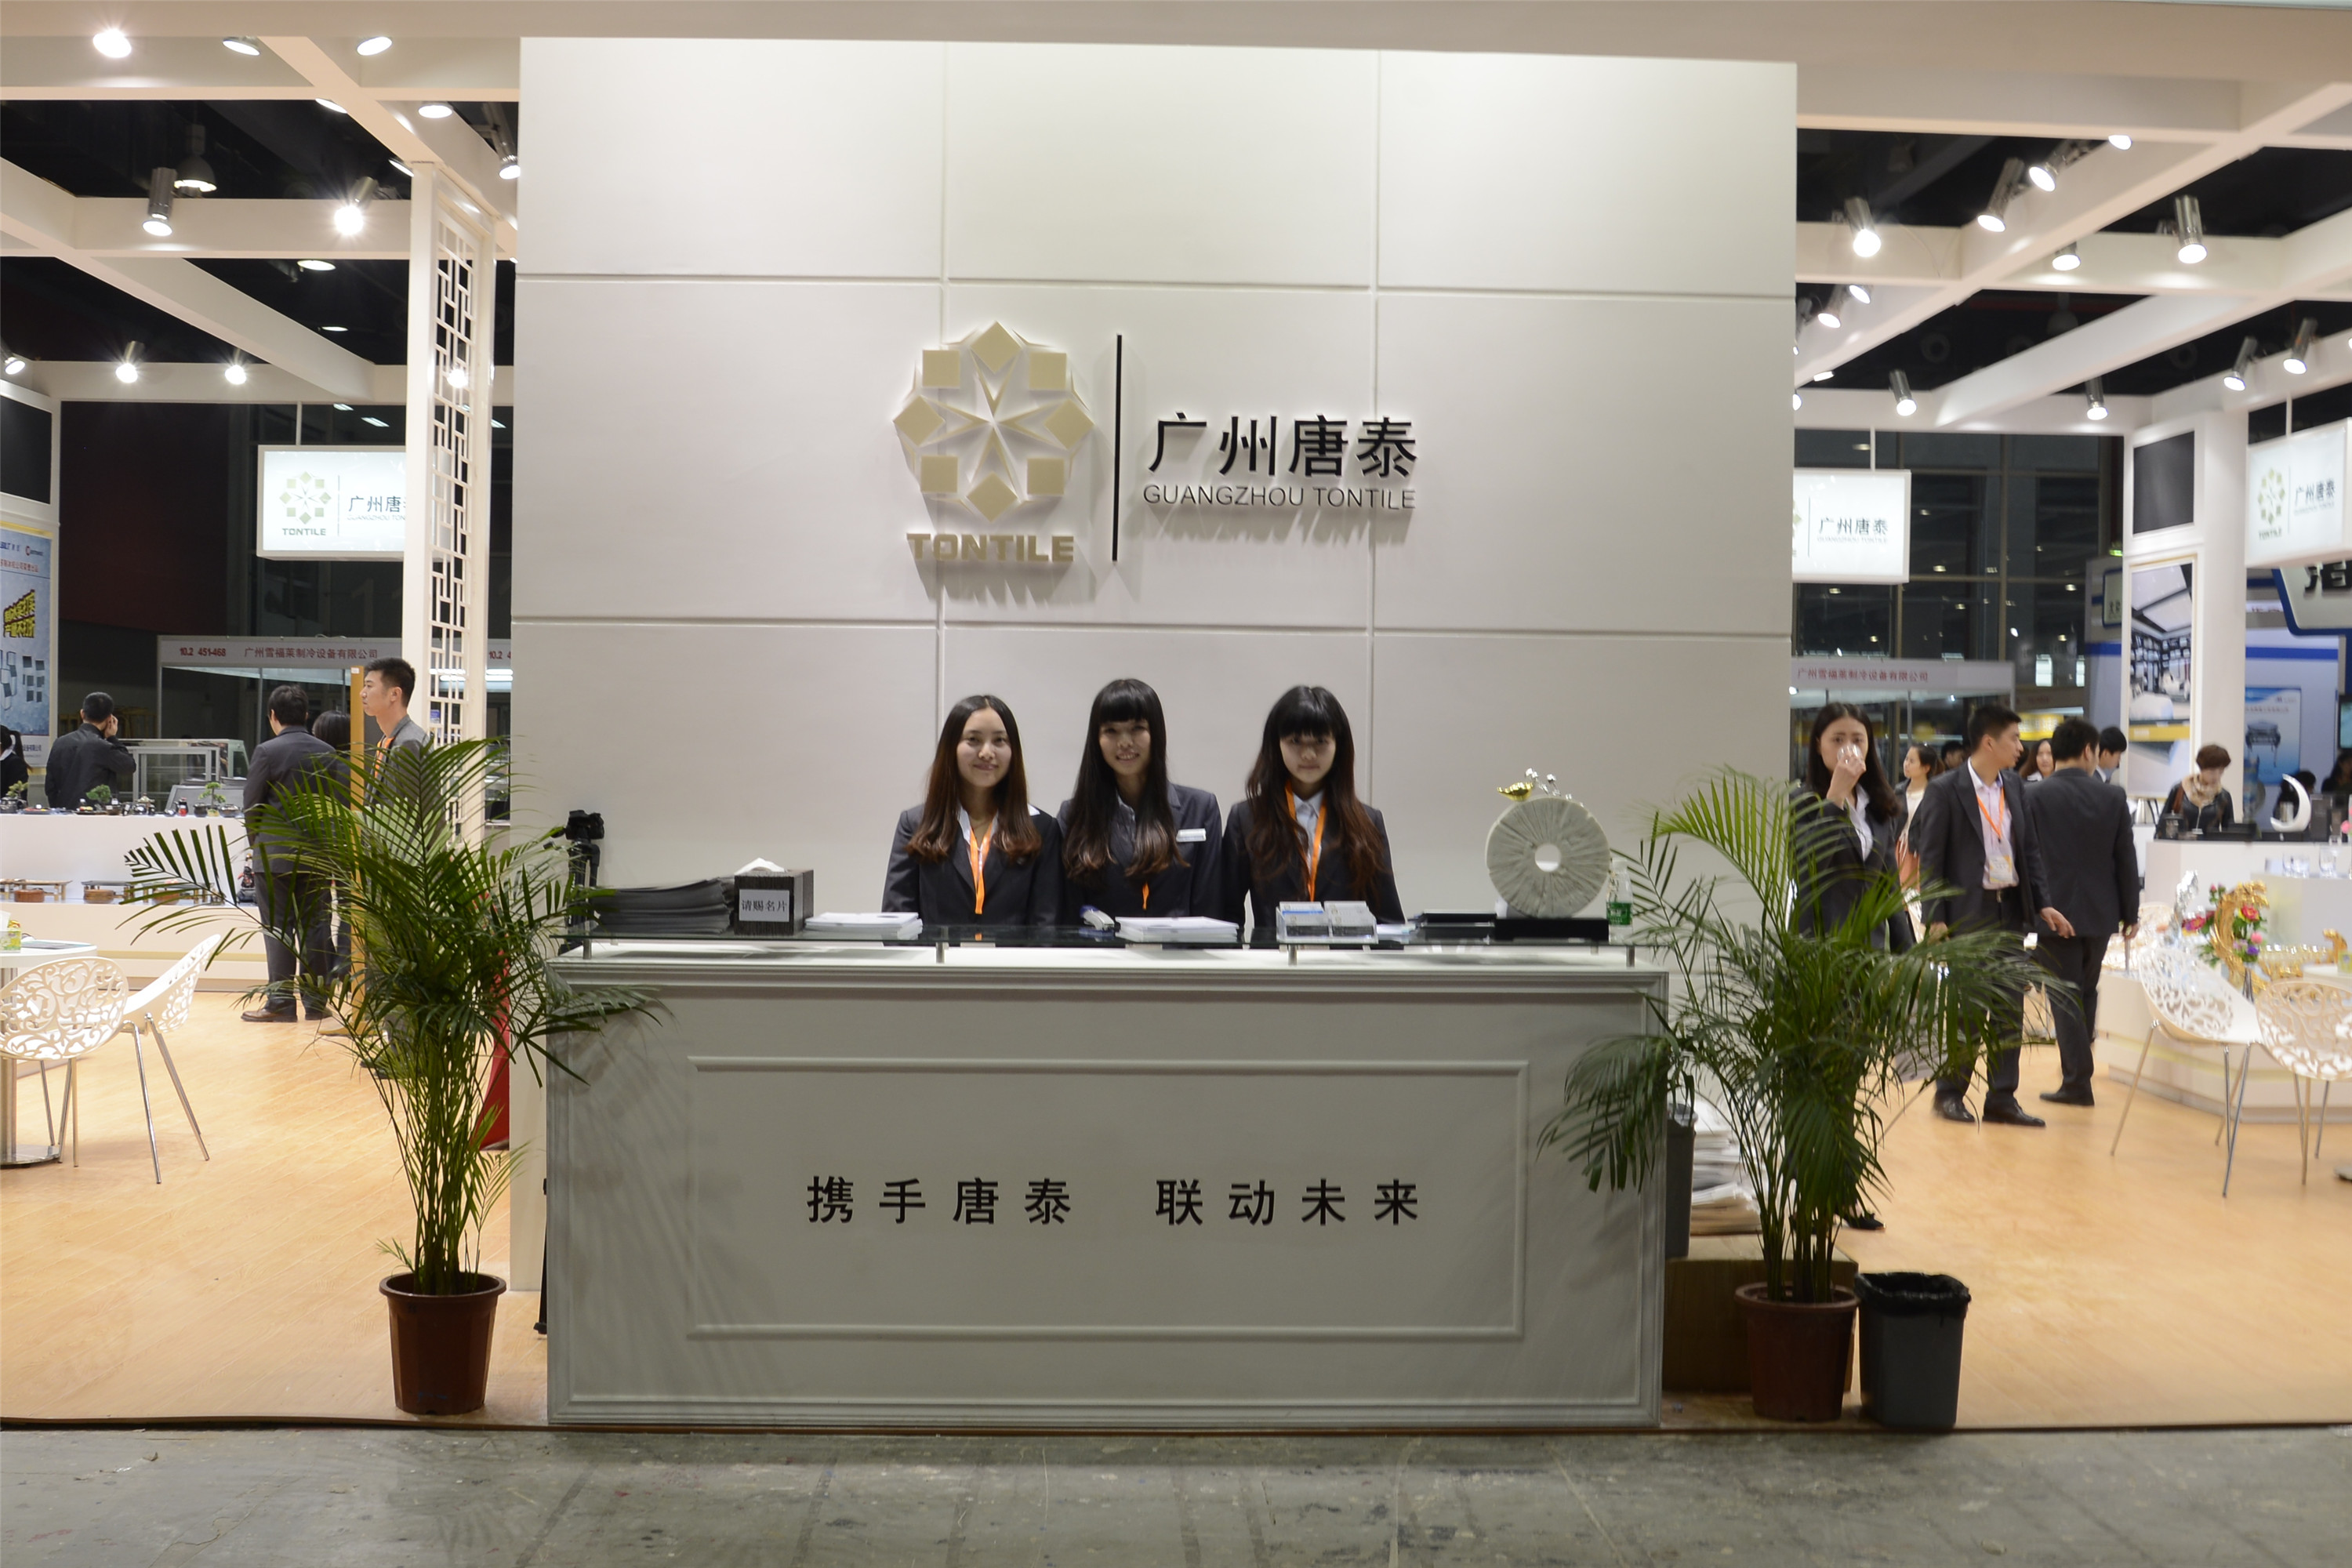 Pazhou exhibition Tontile